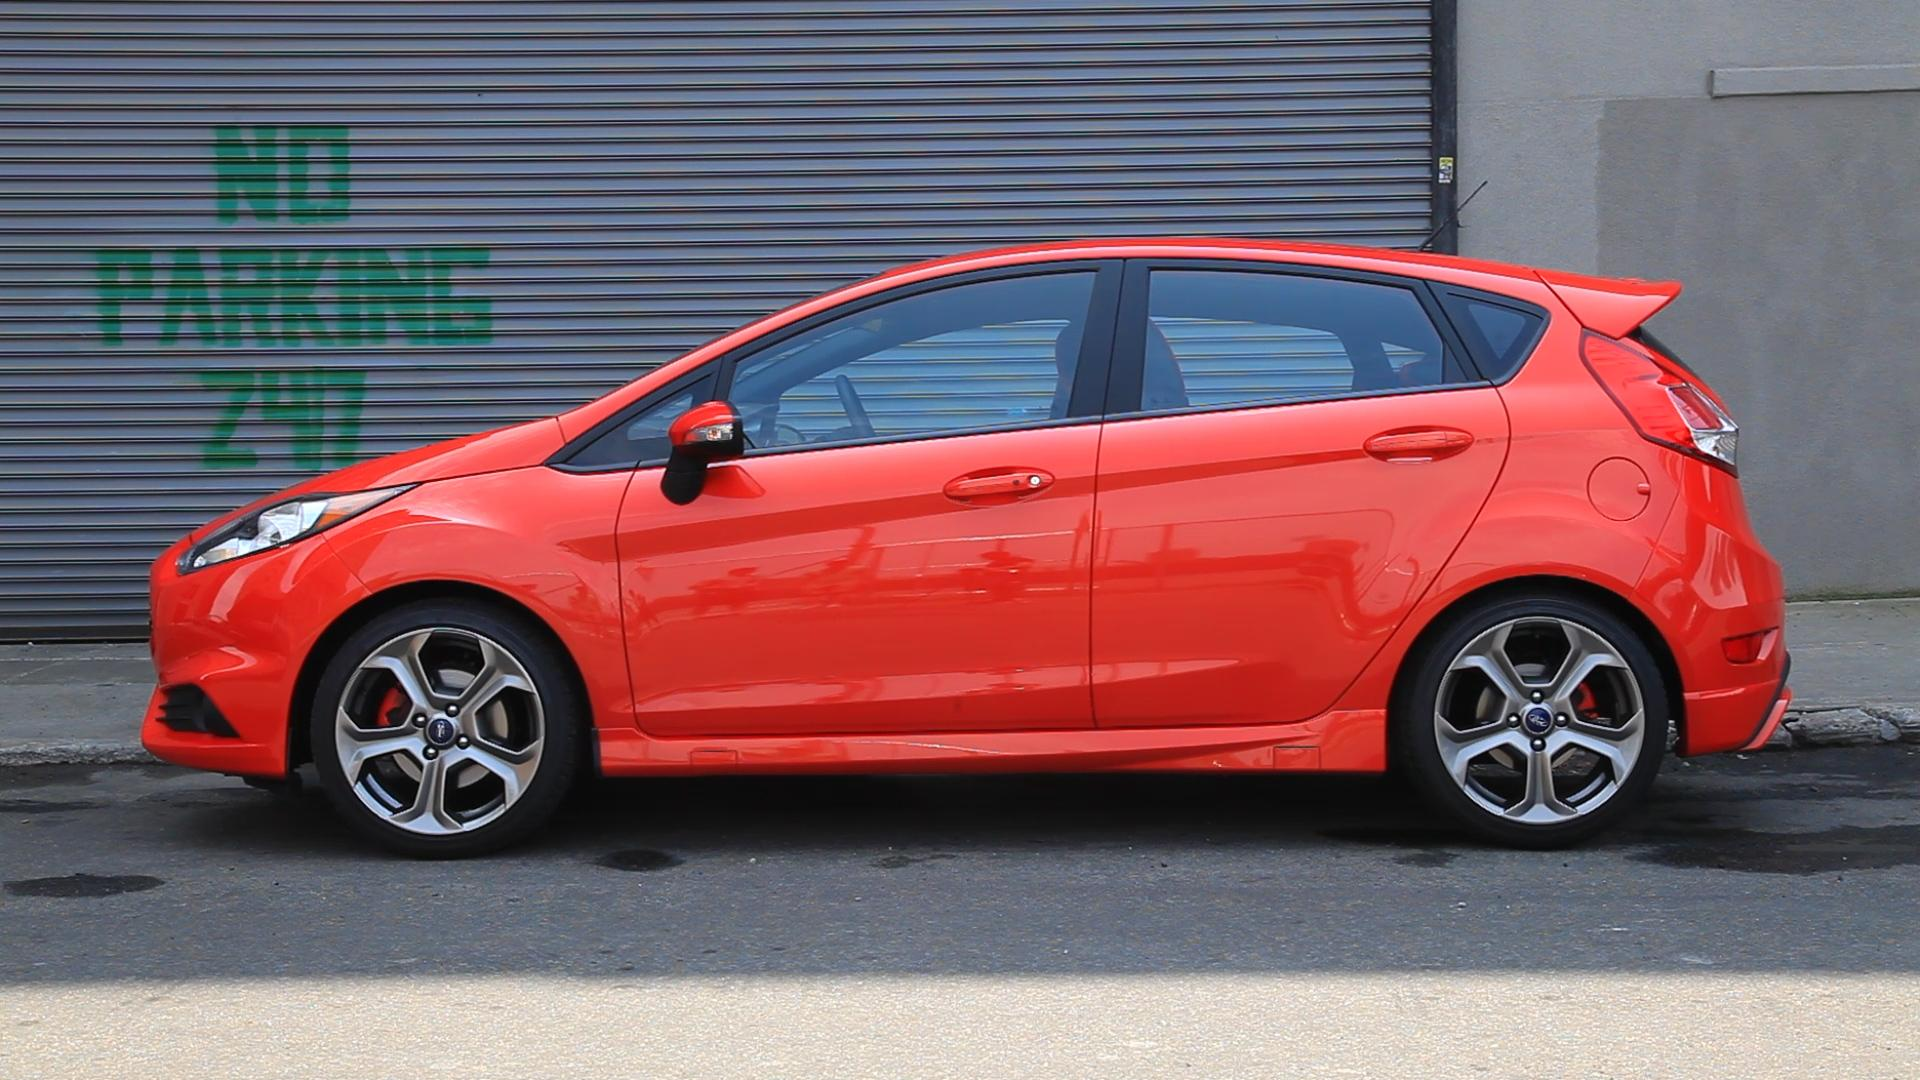 2014 Ford Fiesta ST Side Profile